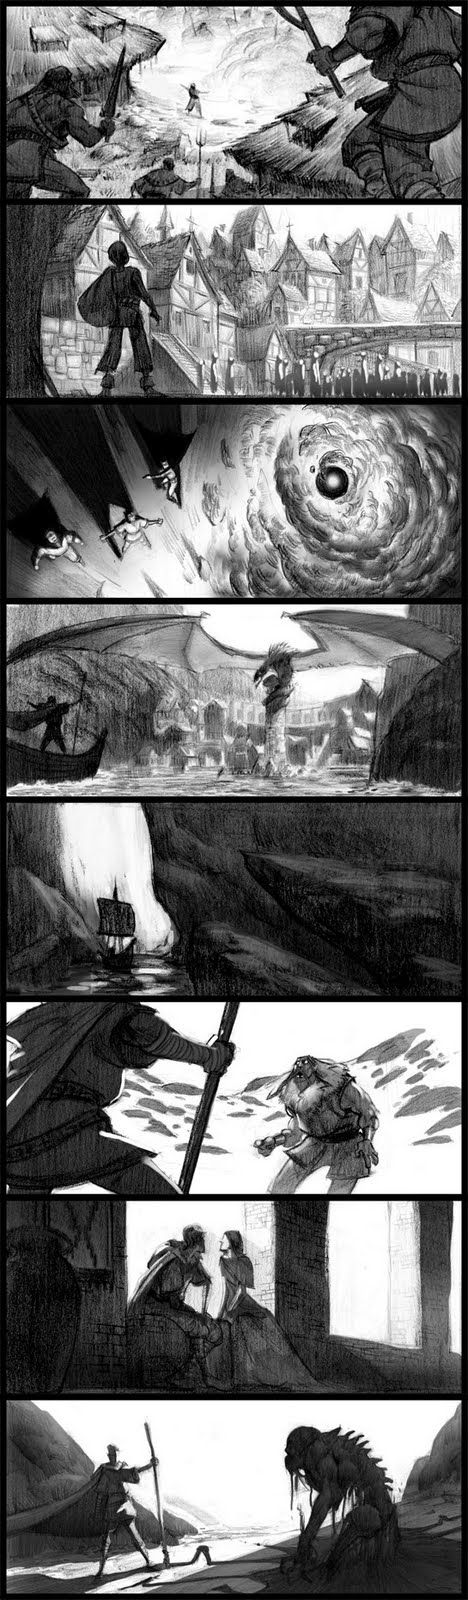 character analysis wizard of earthsea Guin on pinterest | see more ideas about a wizard of earthsea, fantasy art  and fantasy artwork  main characters from tehanu, earthsea tenar and  therru.